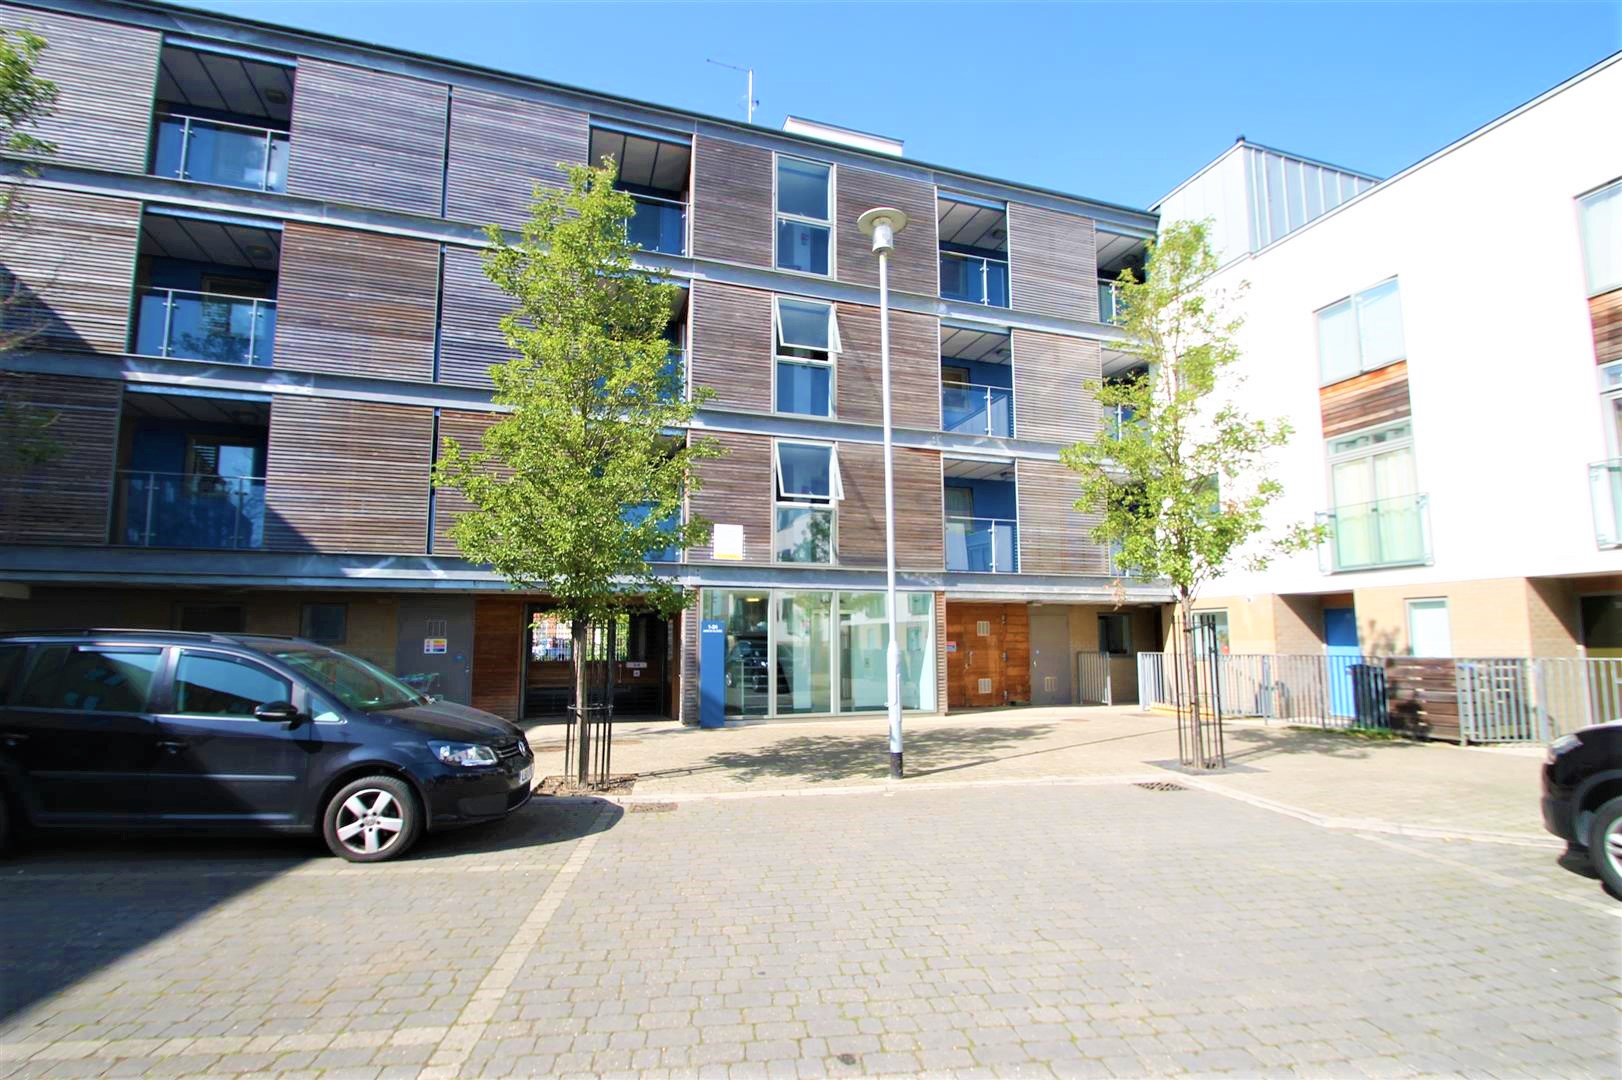 Property for Sale in Colindale | Anderson Brown & Clarke